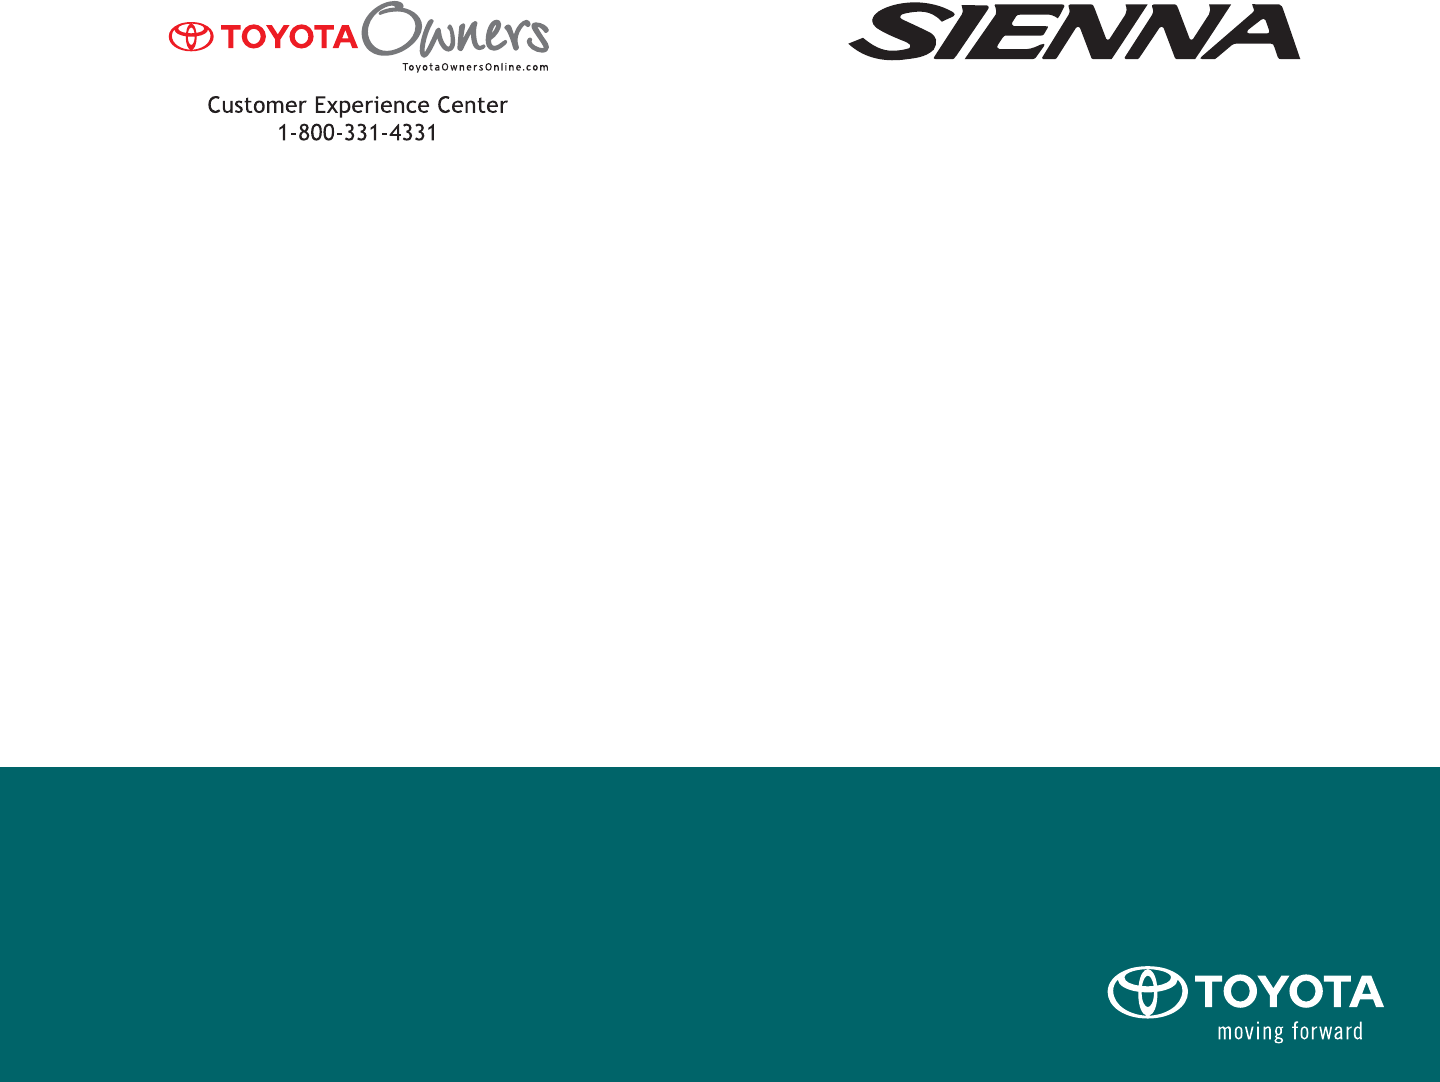 2009 toyota sienna owners manual pdf freerunsca Choice Image